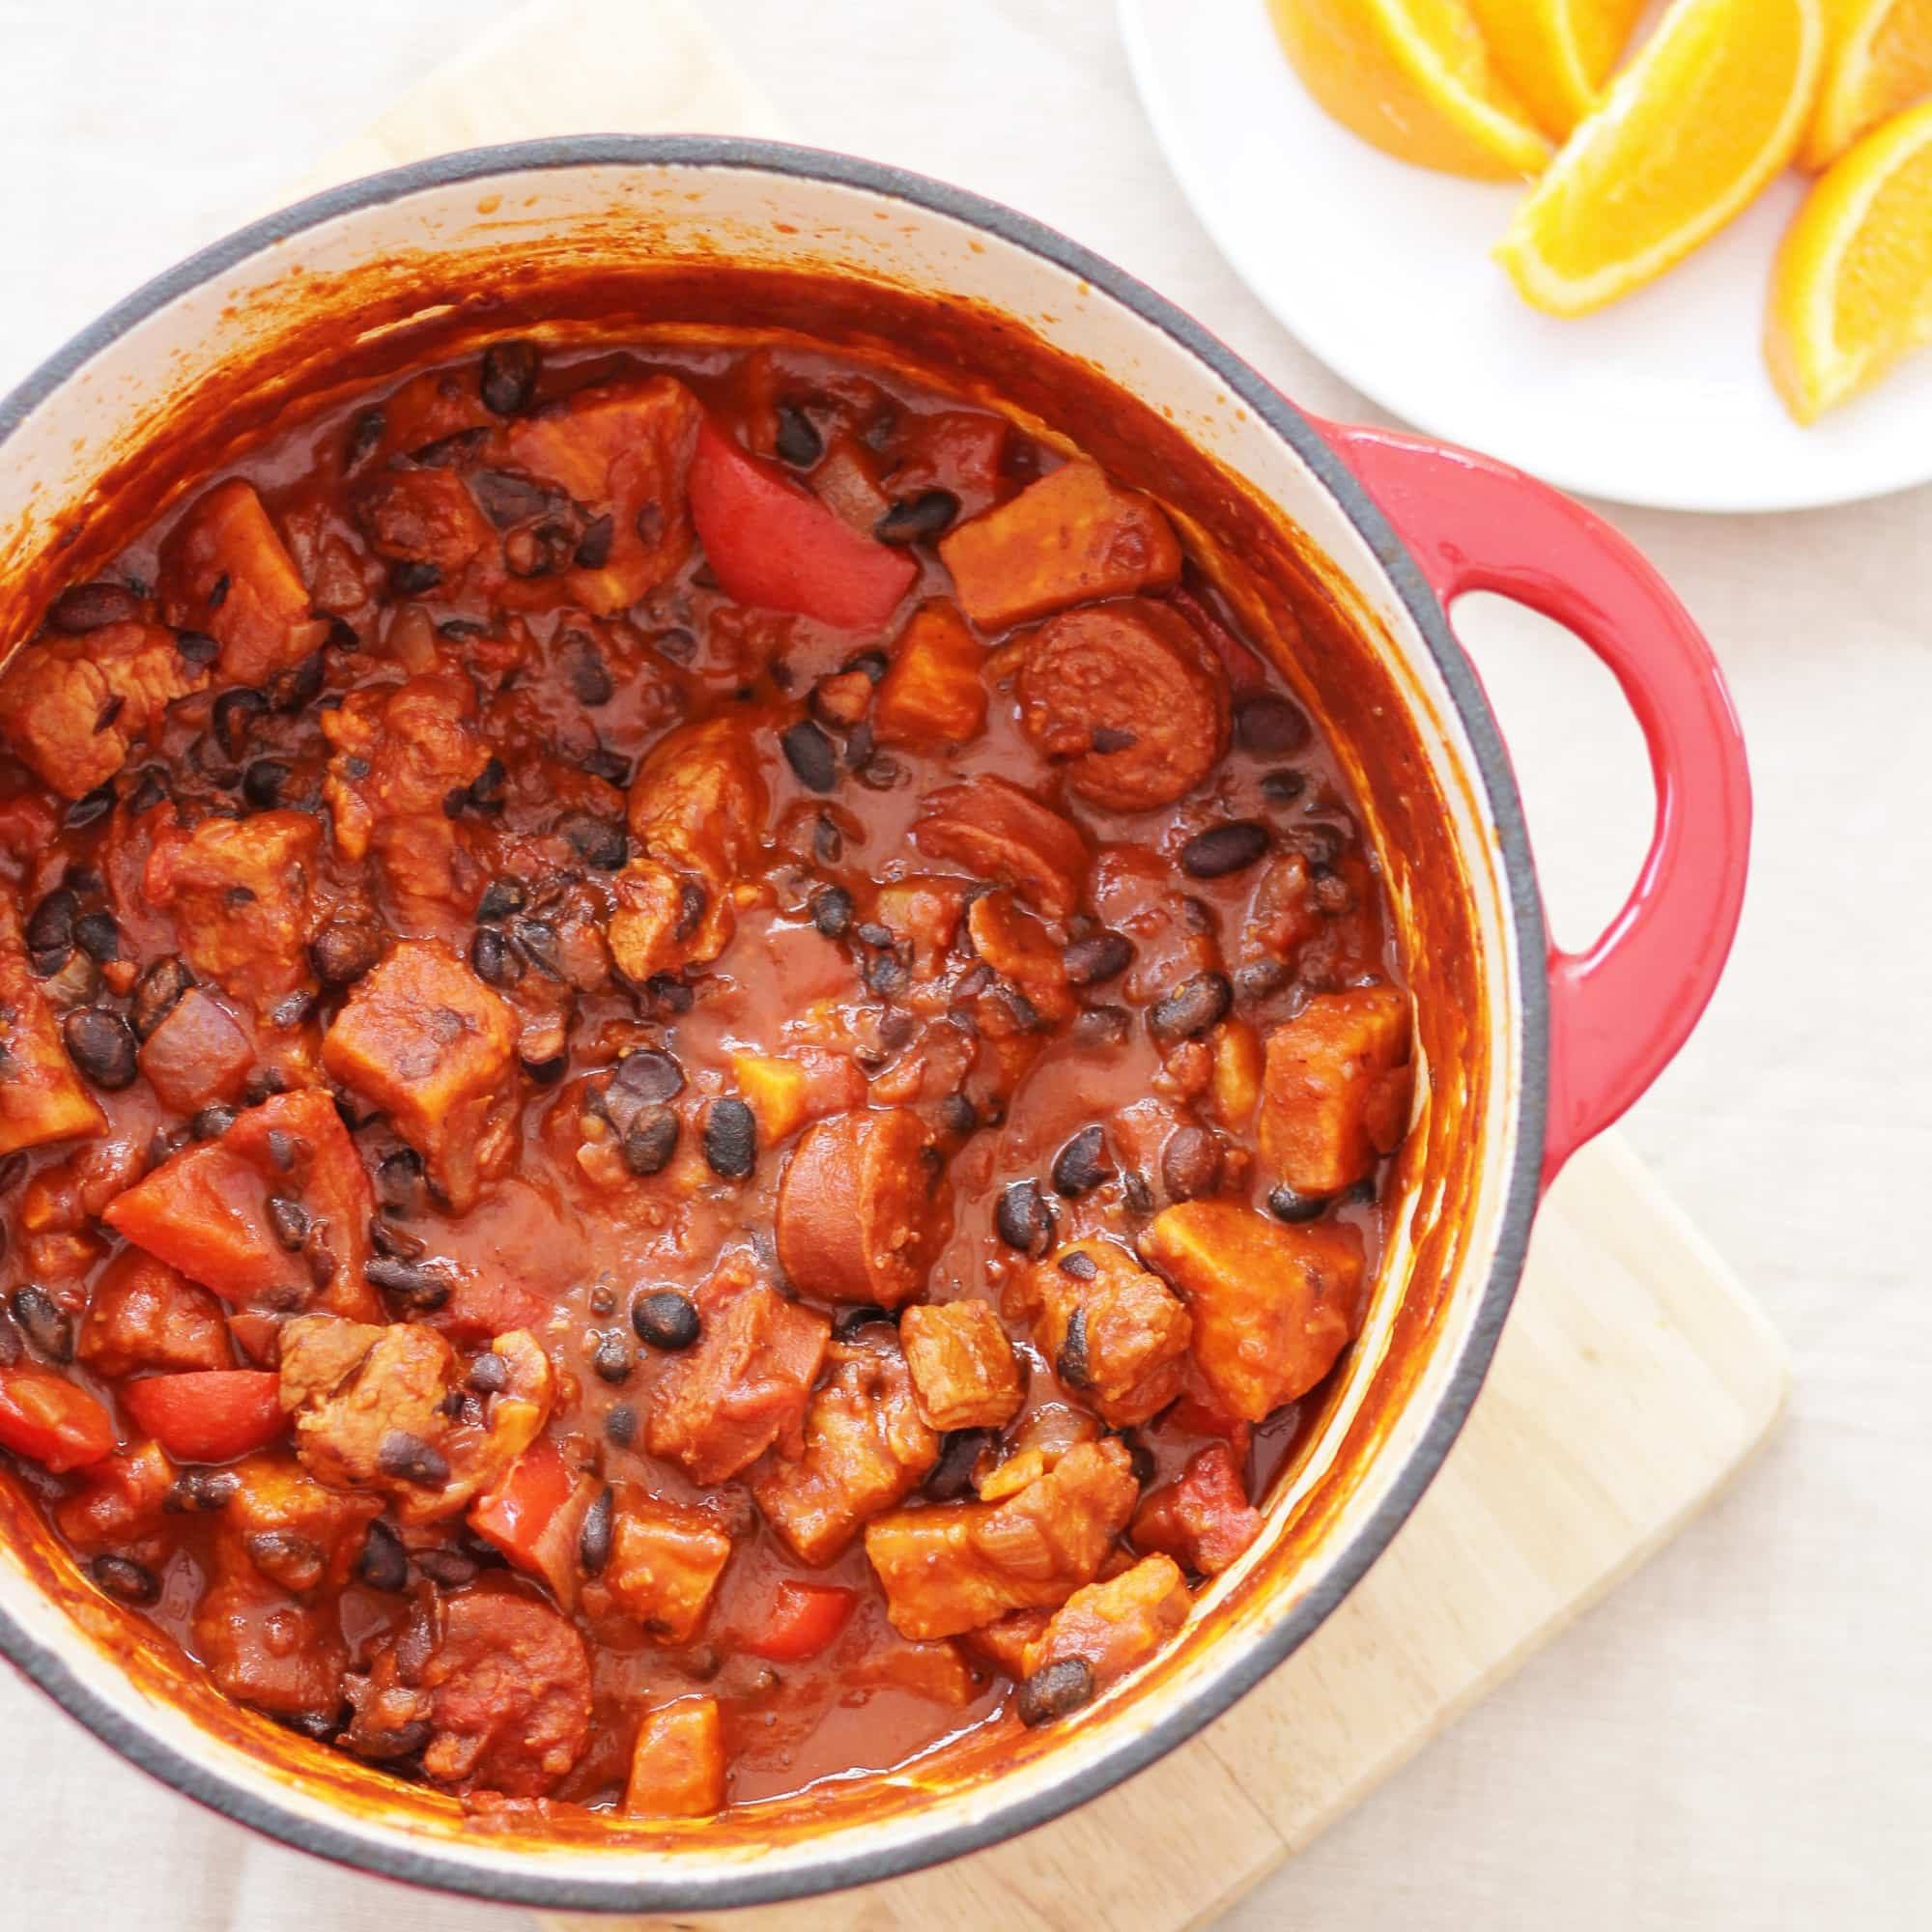 Feijoada (pronounced fey-JWAH-duh, according to the internet), is a ...